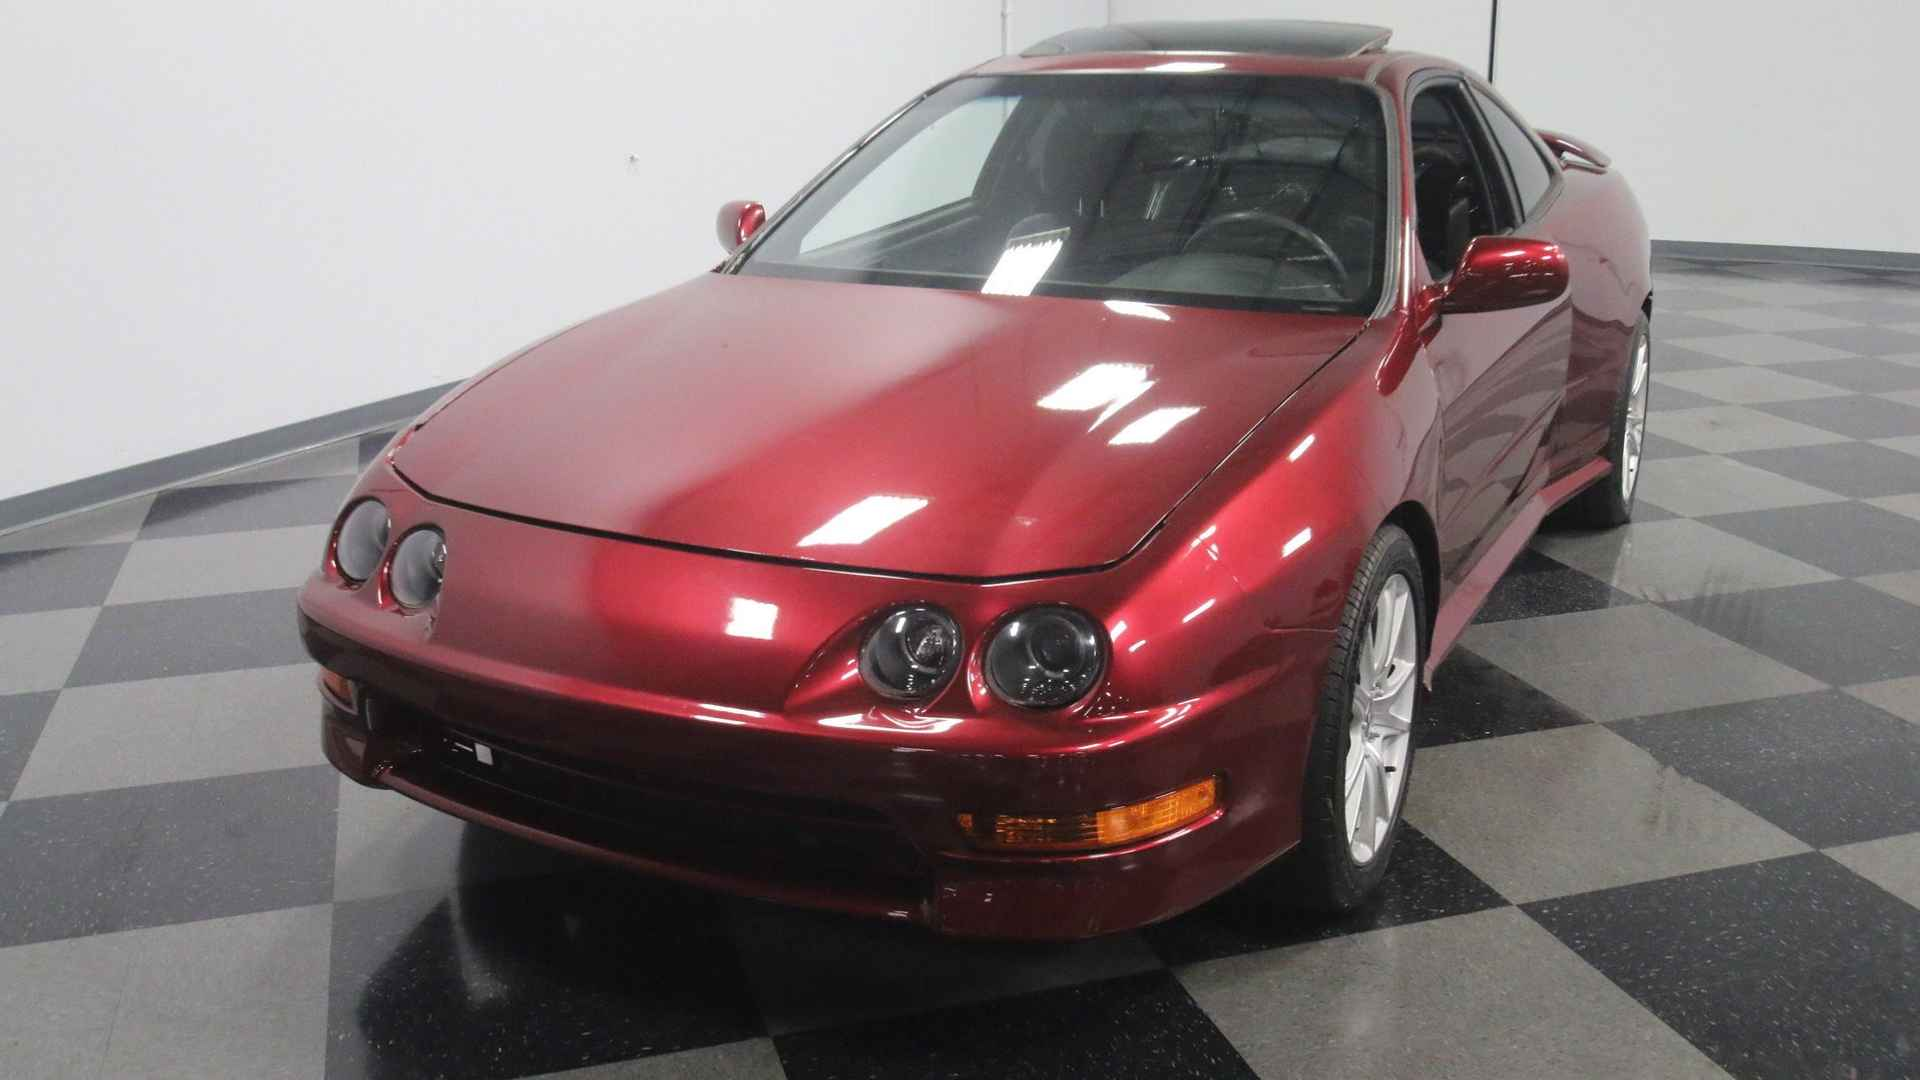 Go Crazy, Buy This 8 2L Twin-Turbo V8-Powered RWD Acura Integra